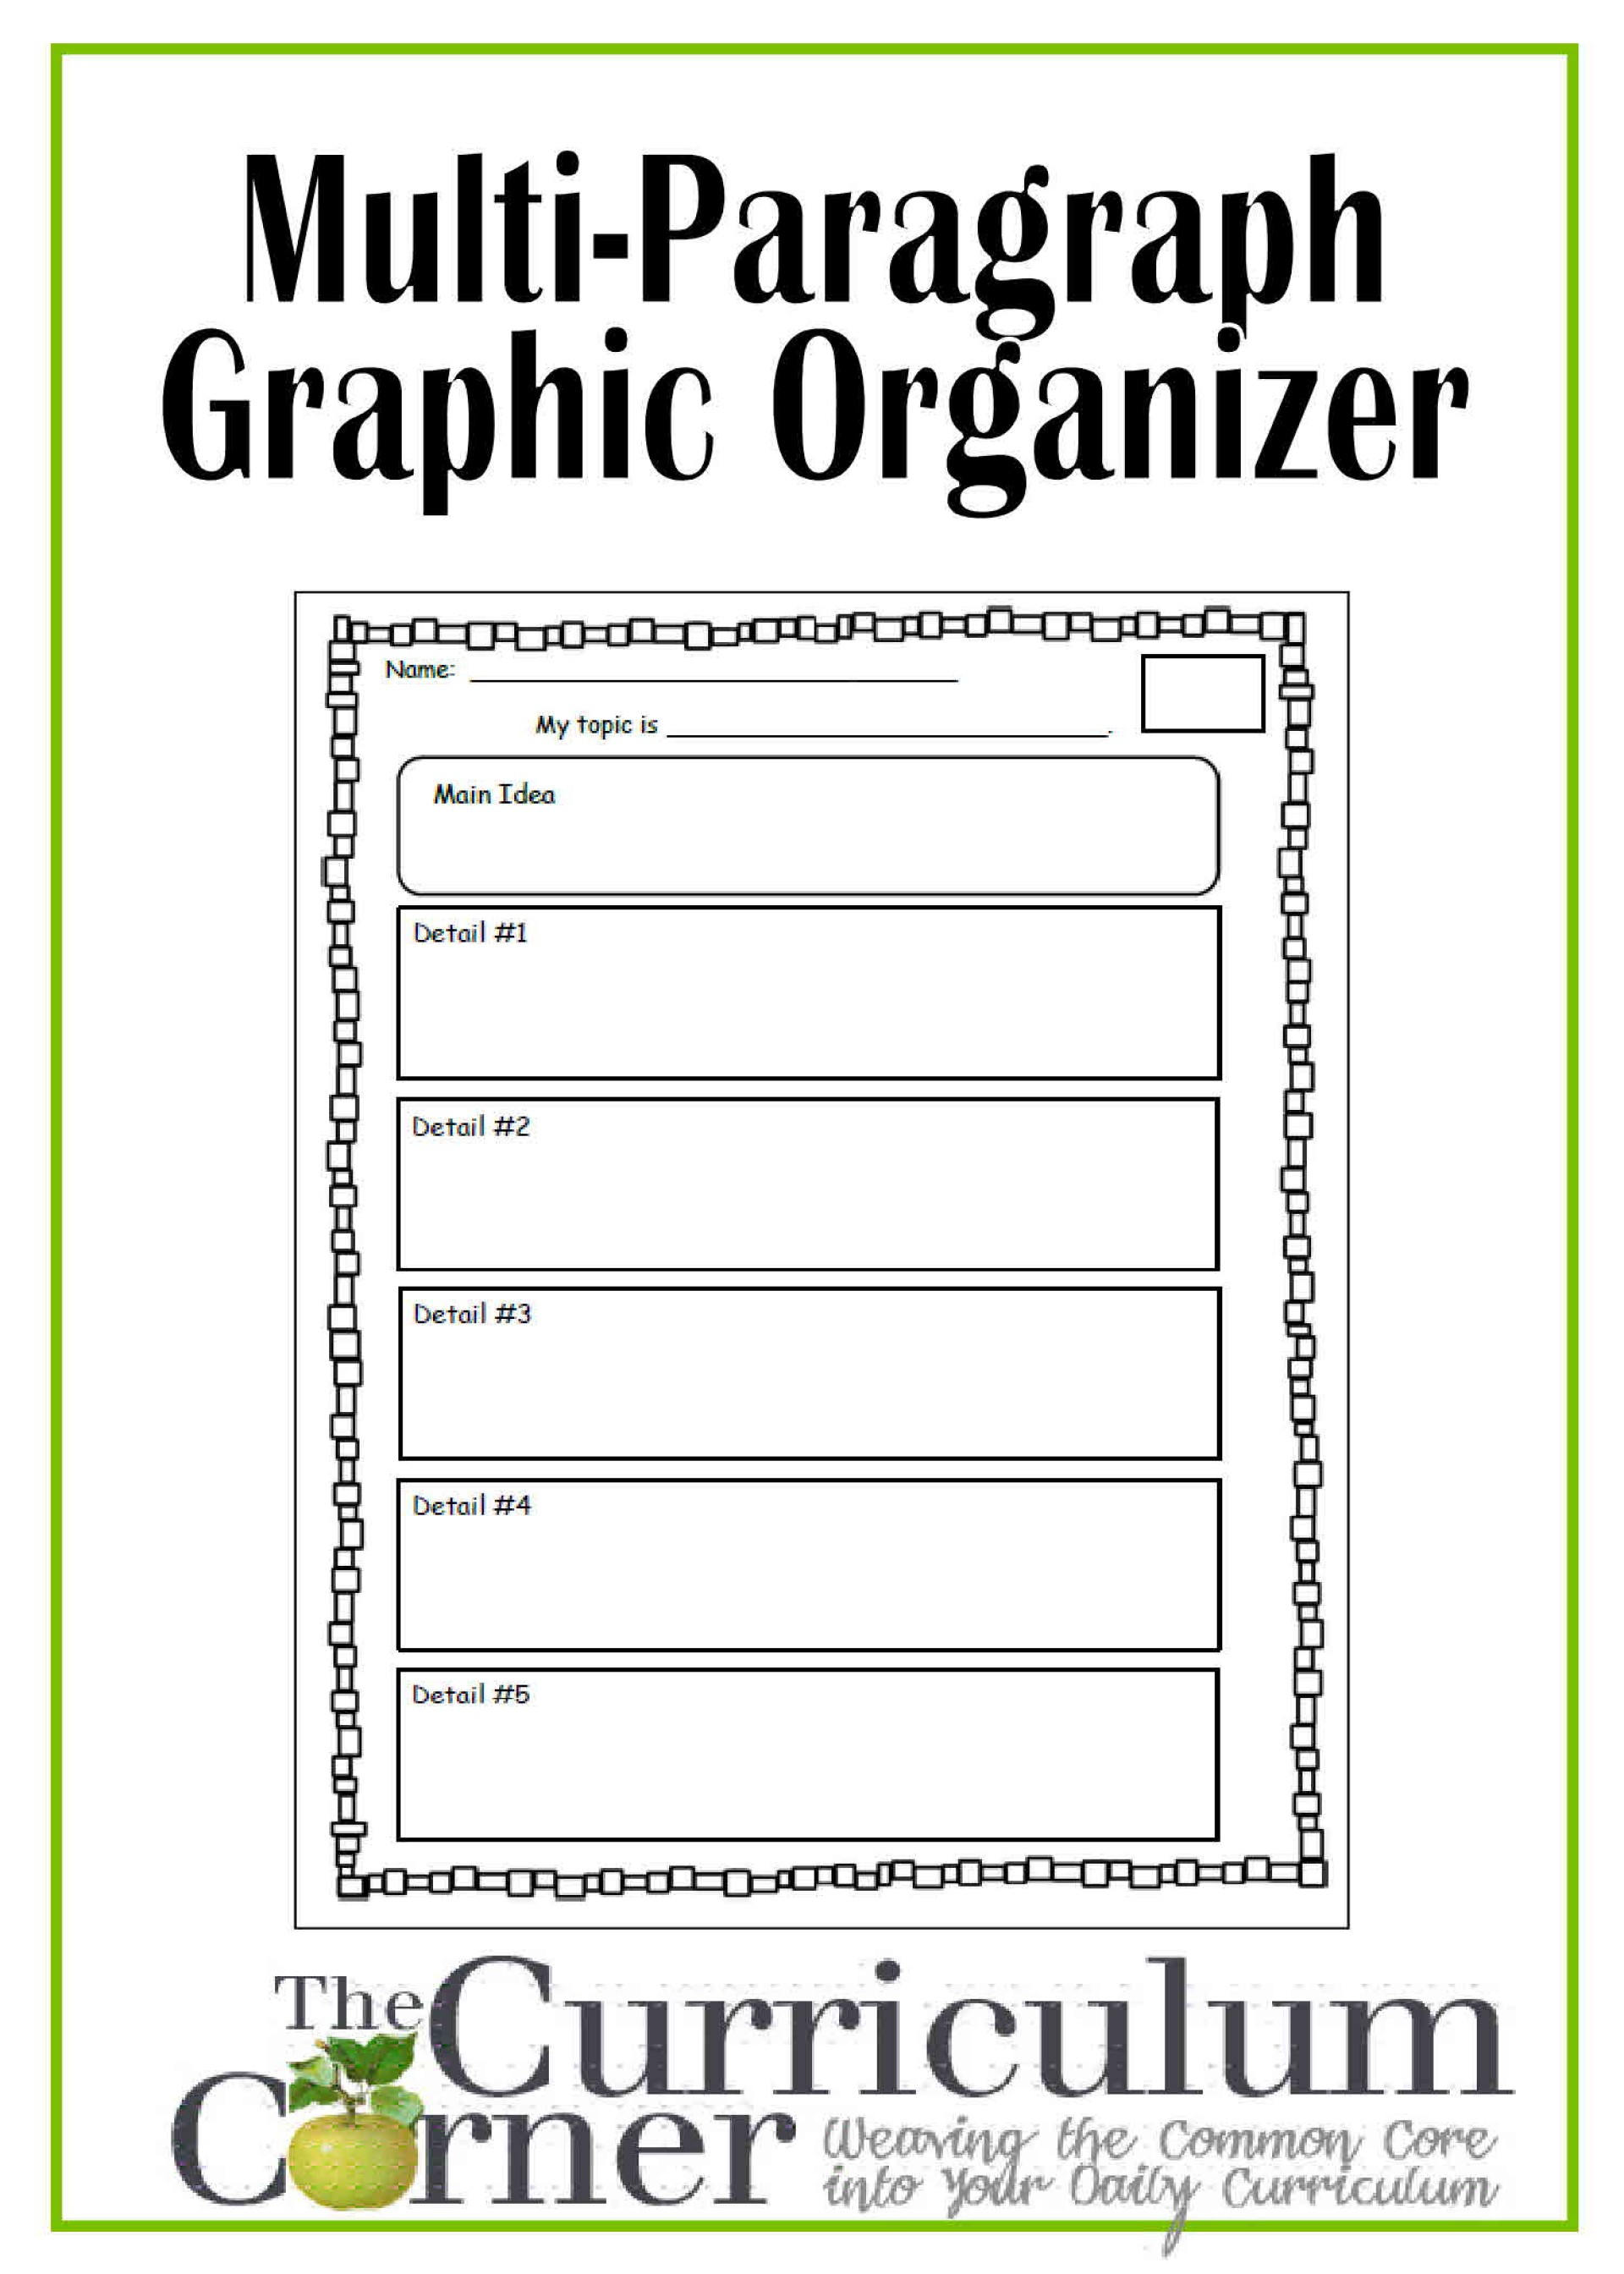 018 Graphic Organizer For Multi Paragraph Research Papers The Multipara Best Organizers Writing Essays Informative Argumentative Literary Persuasive Free Descriptive Essay College Fascinating Informational Pdf 6th Grade 1920